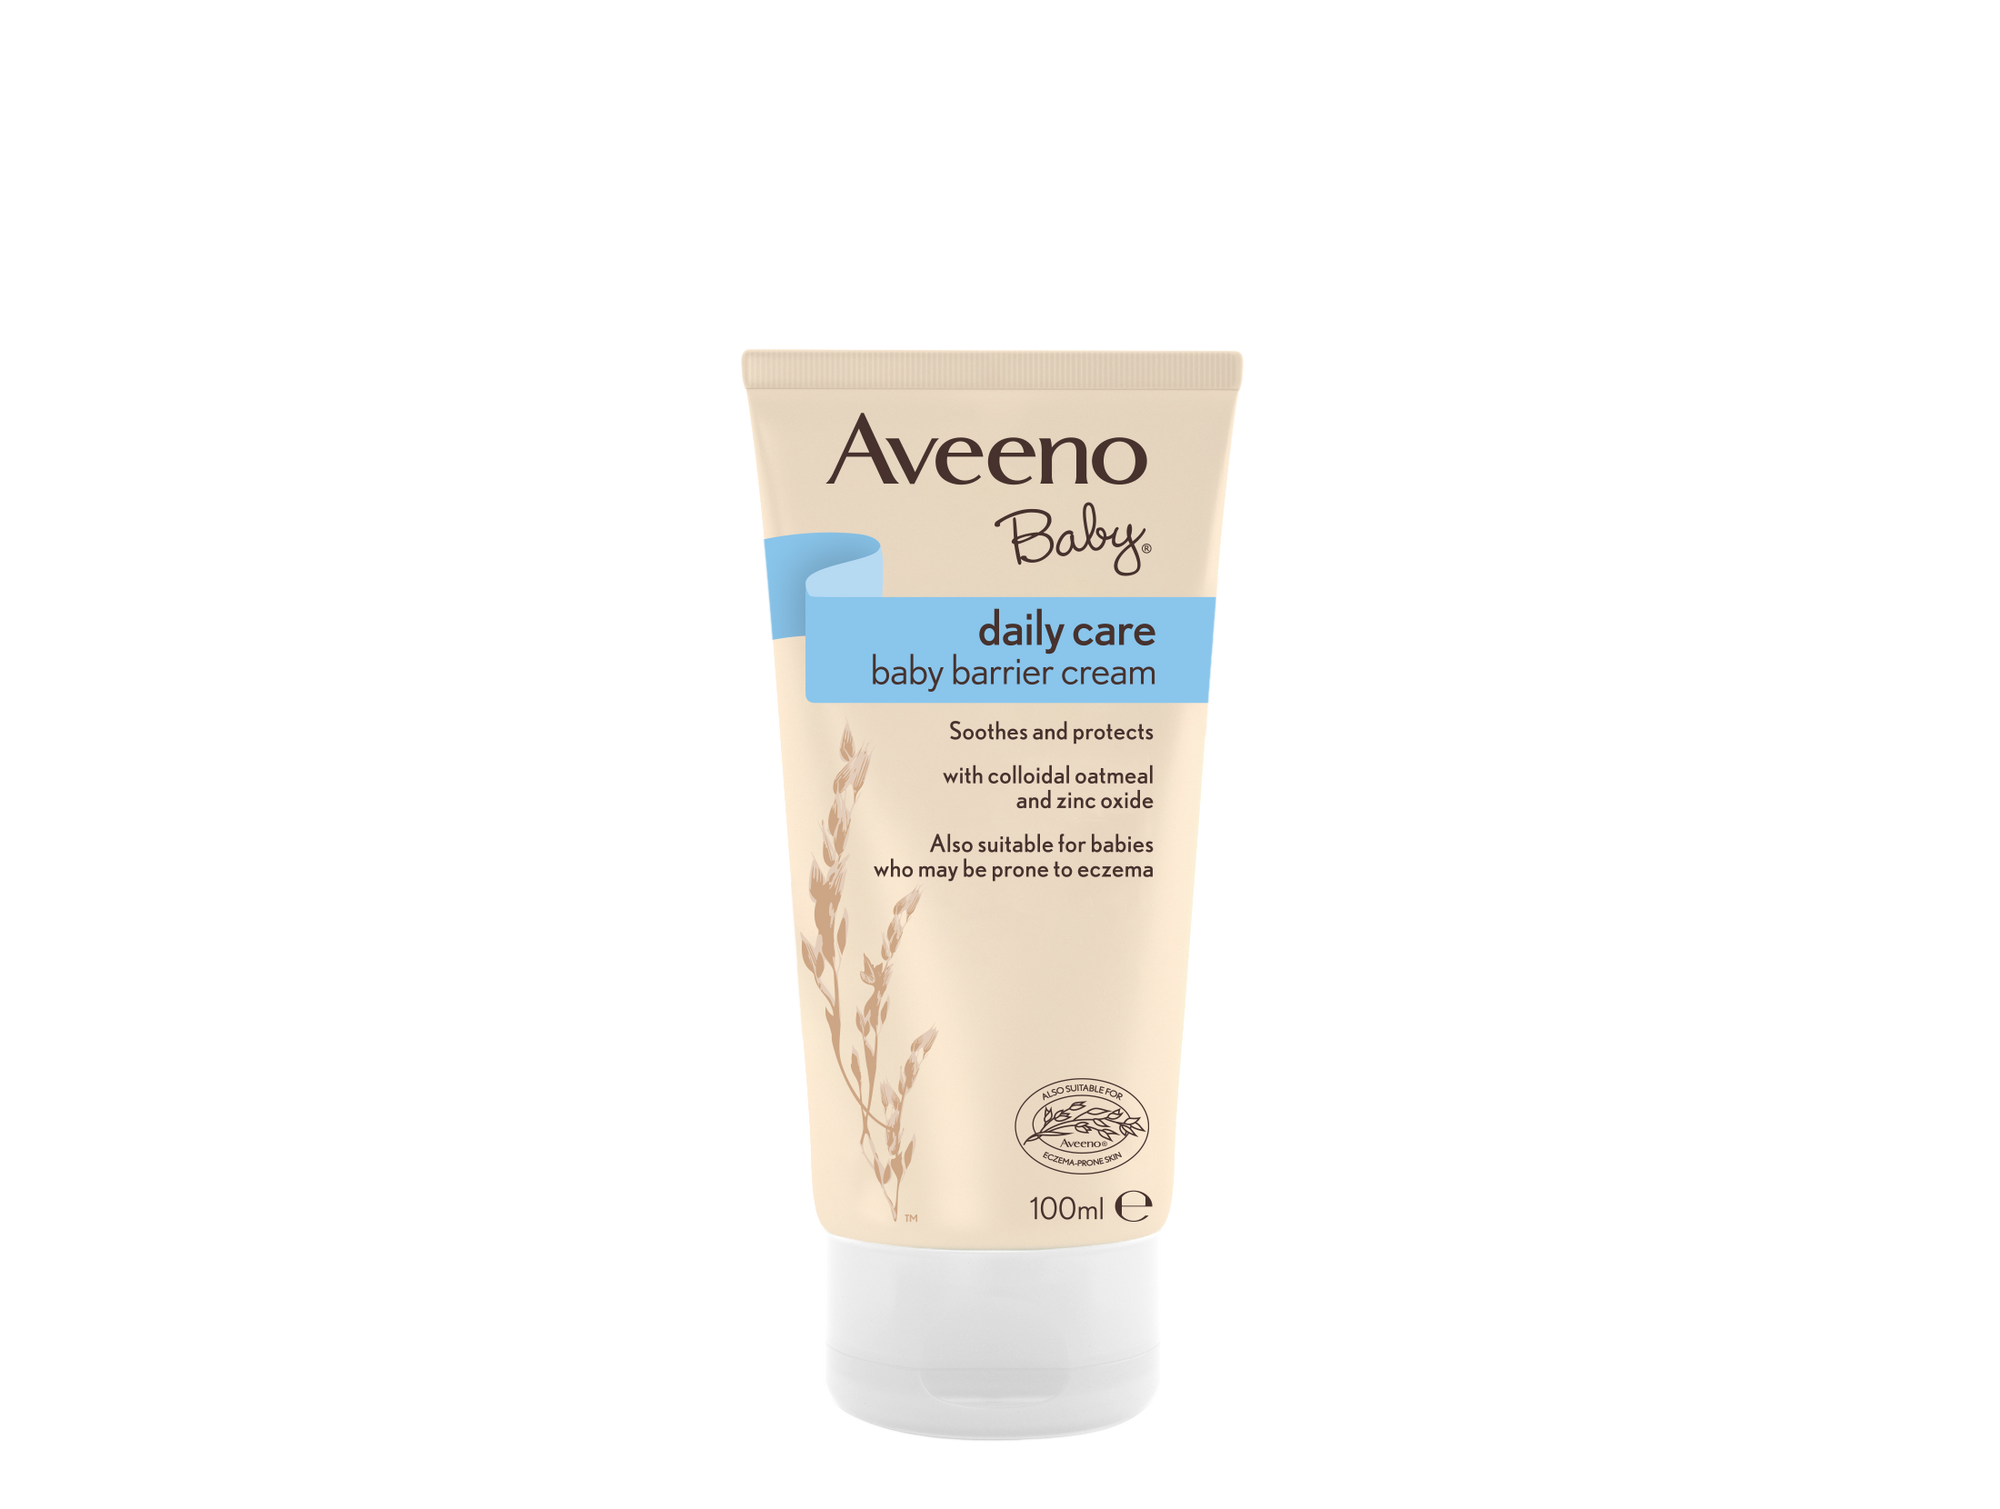 Aveeno Barrier Baby Cream 100ml